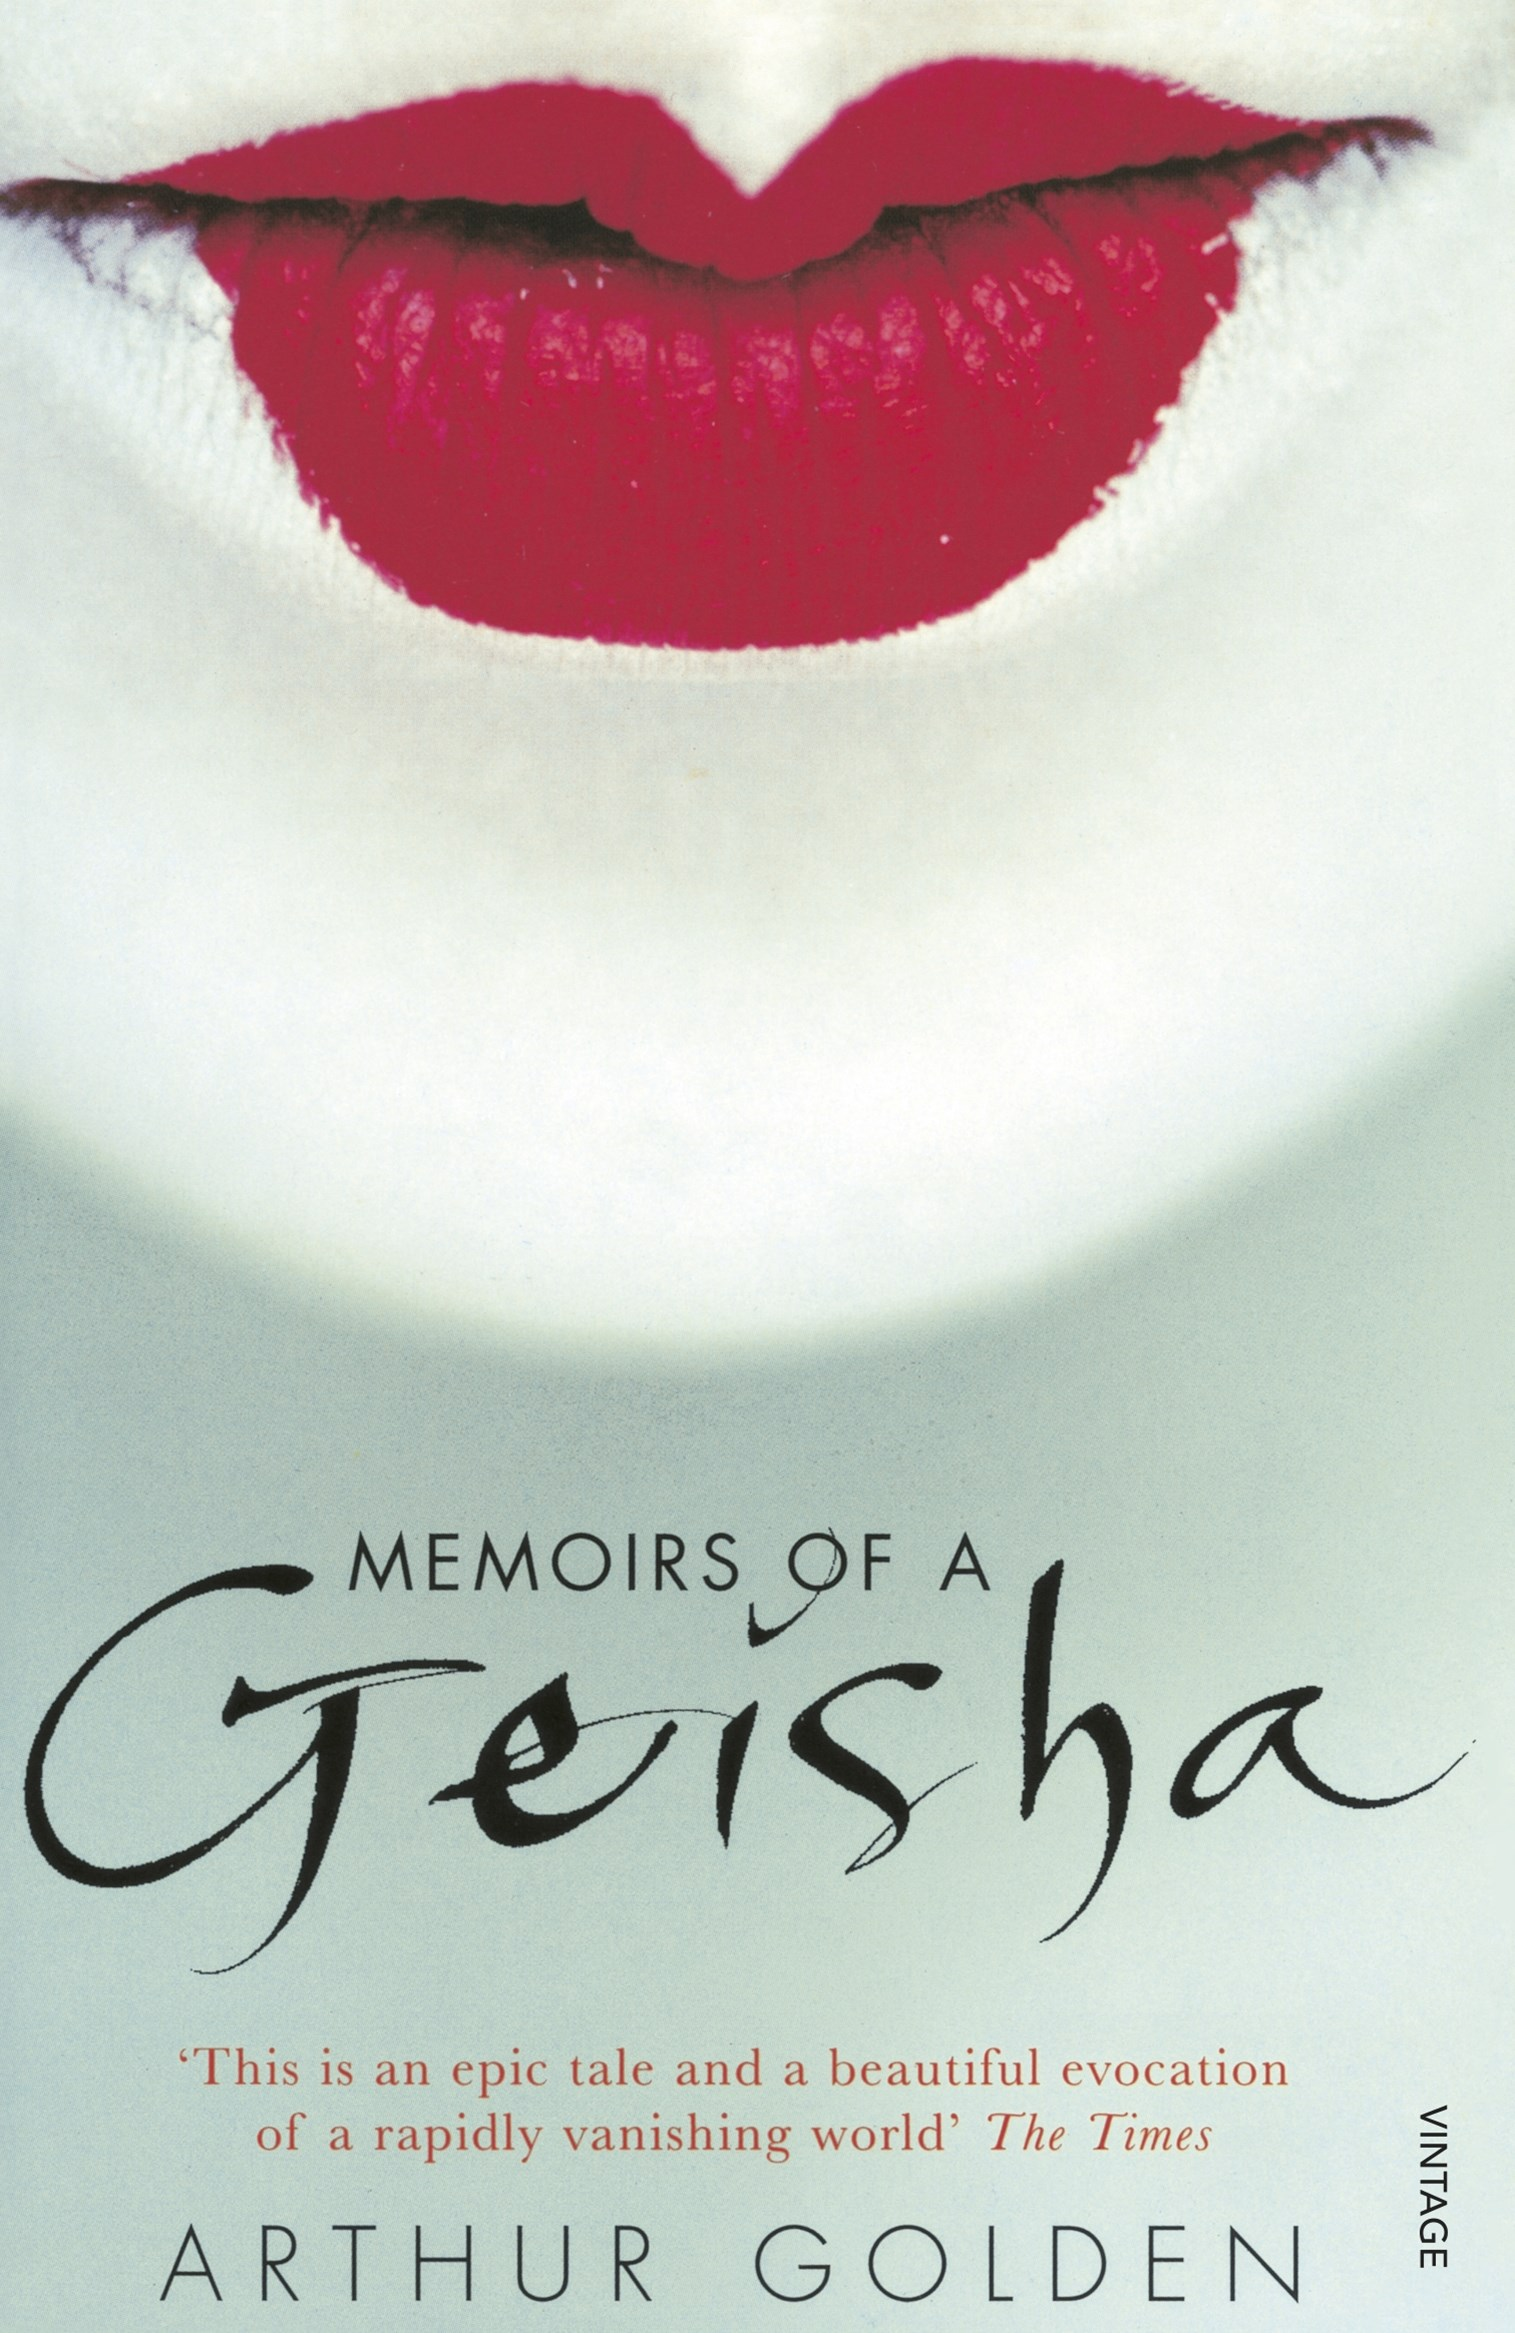 a review of the novel memoirs of a geisha by arthur golden Memoirs of a geisha by arthur golden (pdf) a romantic historical fiction novel exploring the life of the geishas in gion district of kyoto it follows the remarkable.